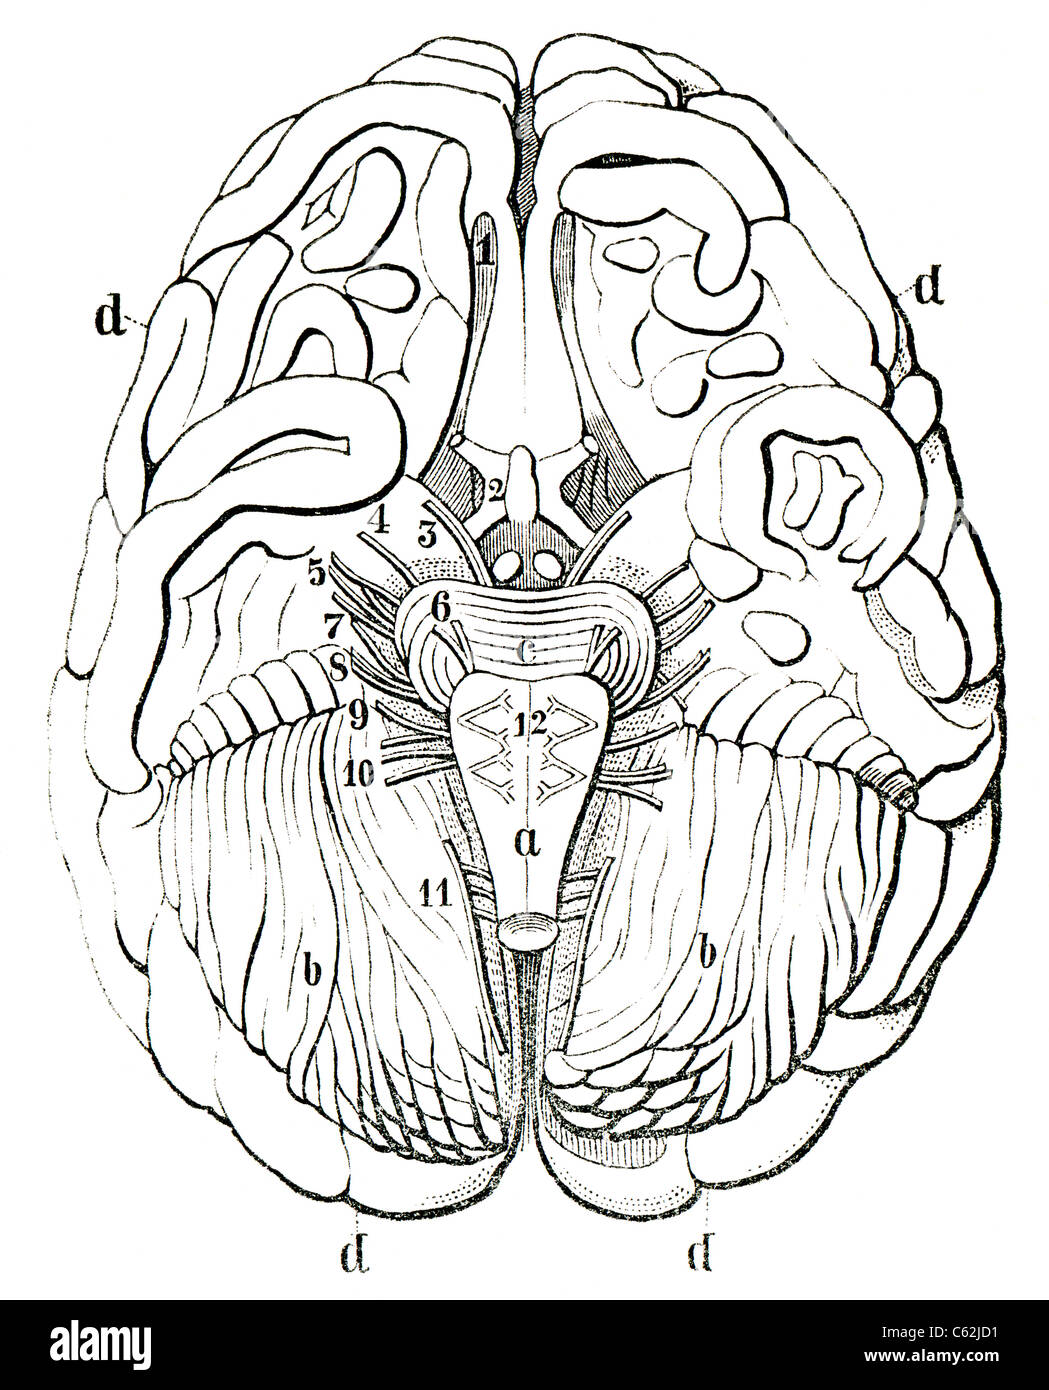 An old engraving of the human brain. The human brain in section. The book 'Natur und Offenbarung' 1861. - Stock Image